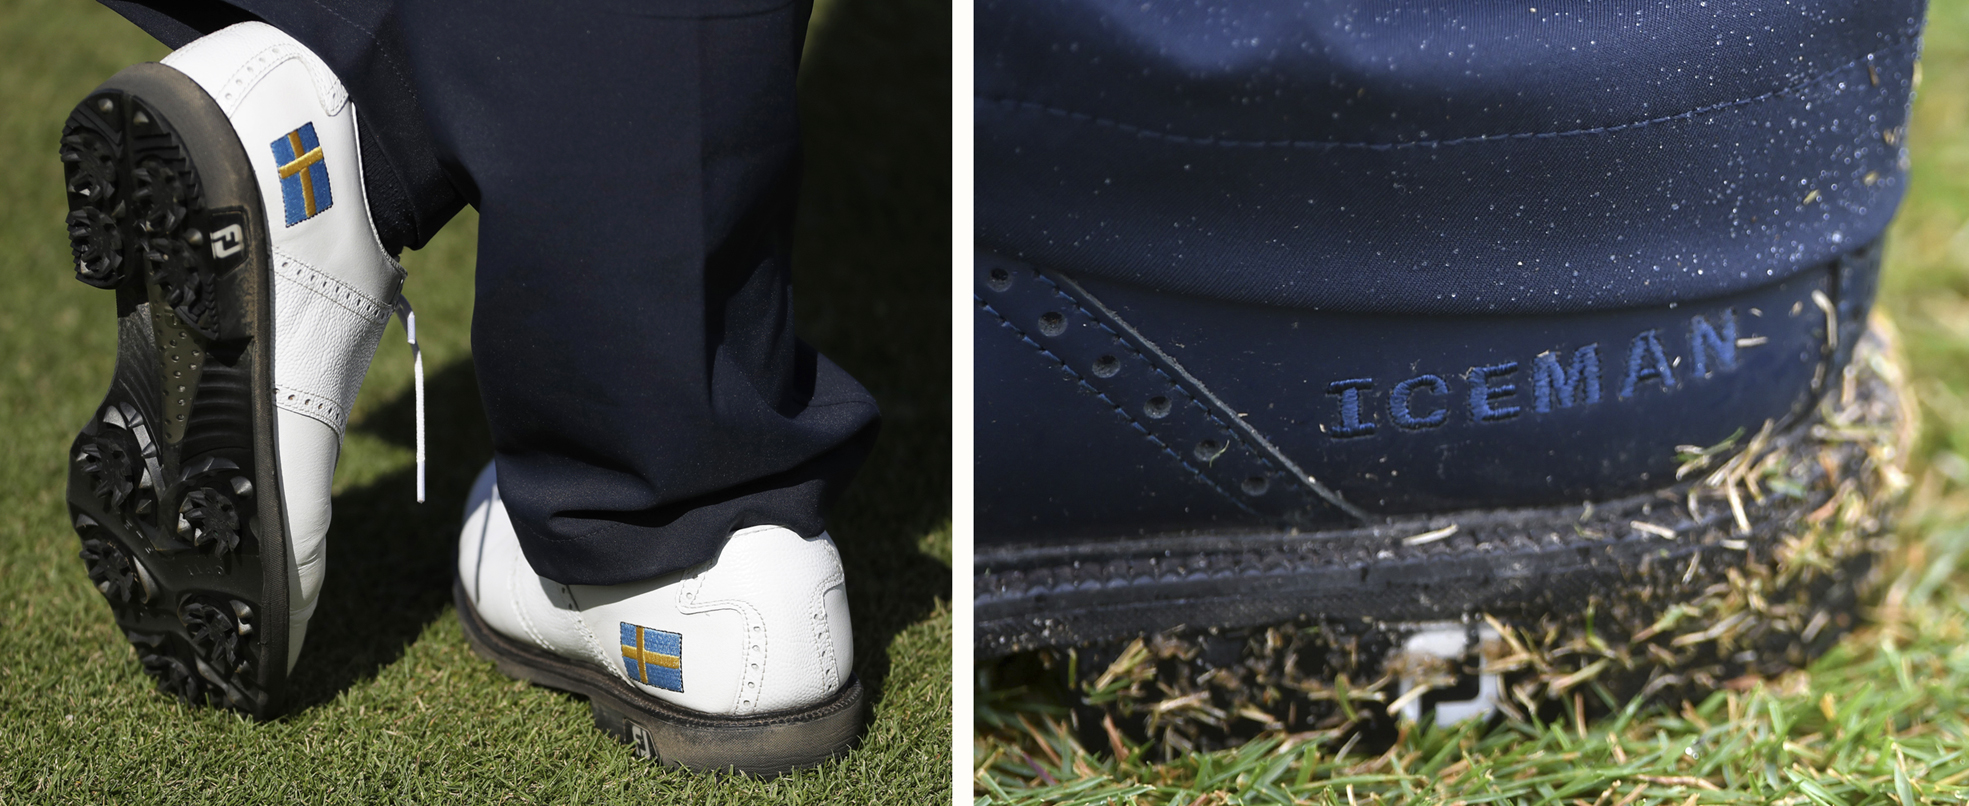 Henrik Stenson, of Sweden, wears the Swedish flag on his golf shoes as he stands on the 13th green during the first round of the men's golf event at the 2016 Summer Olympics in Rio de Janeiro, Brazil, Thursday, Aug. 11, 2016. (AP Photo/Chris Carlson)